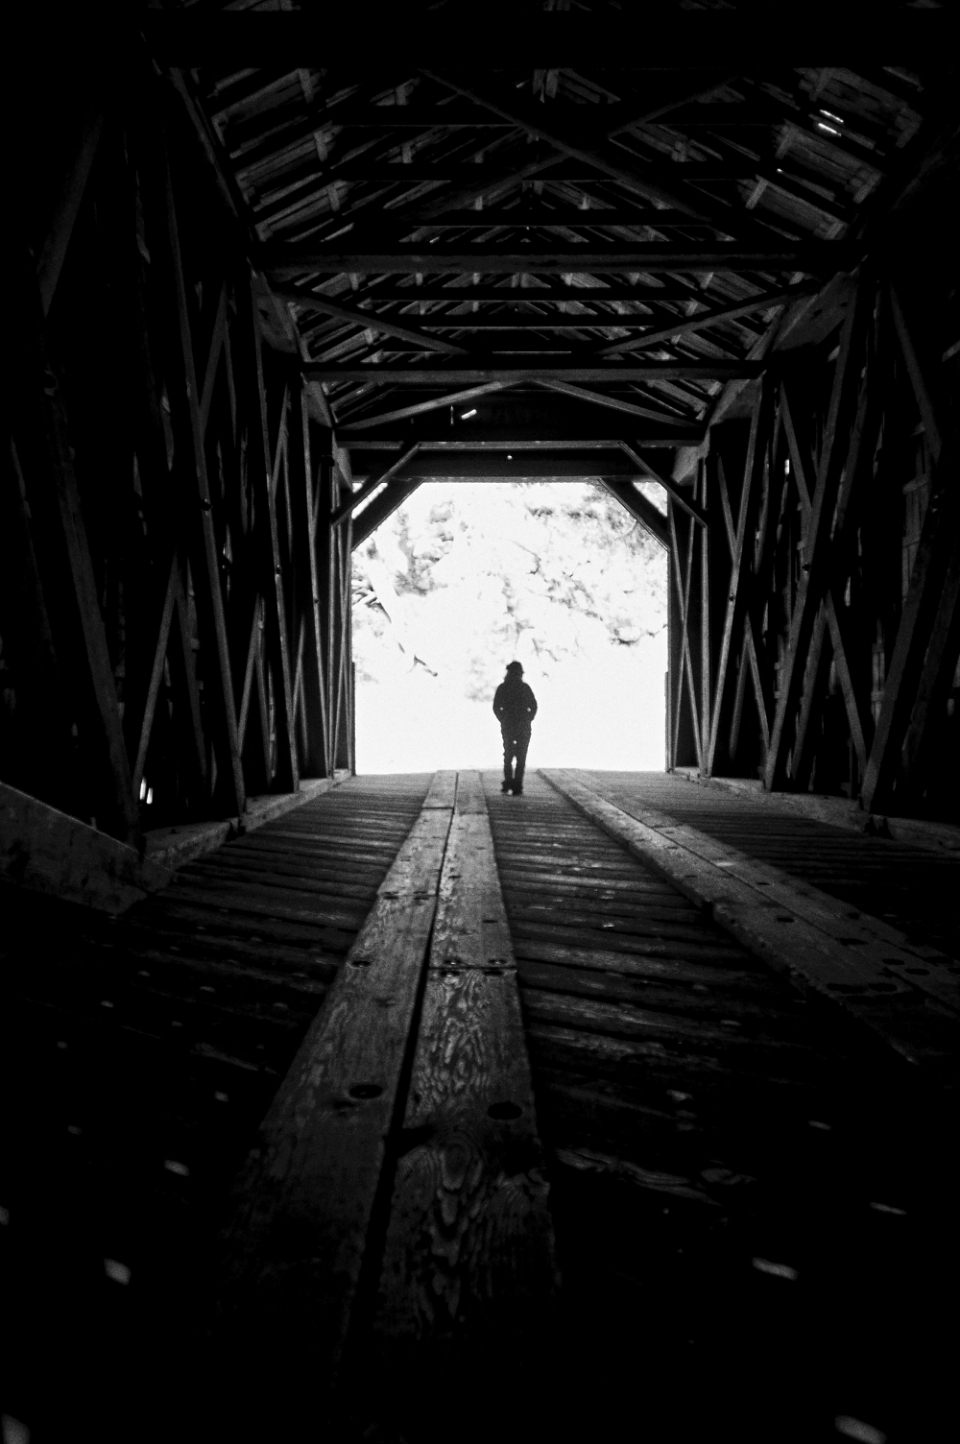 walk woman silhouette wooden bridge alone journey travel monochromatic covered peaceful outdoors moody light tunnel path